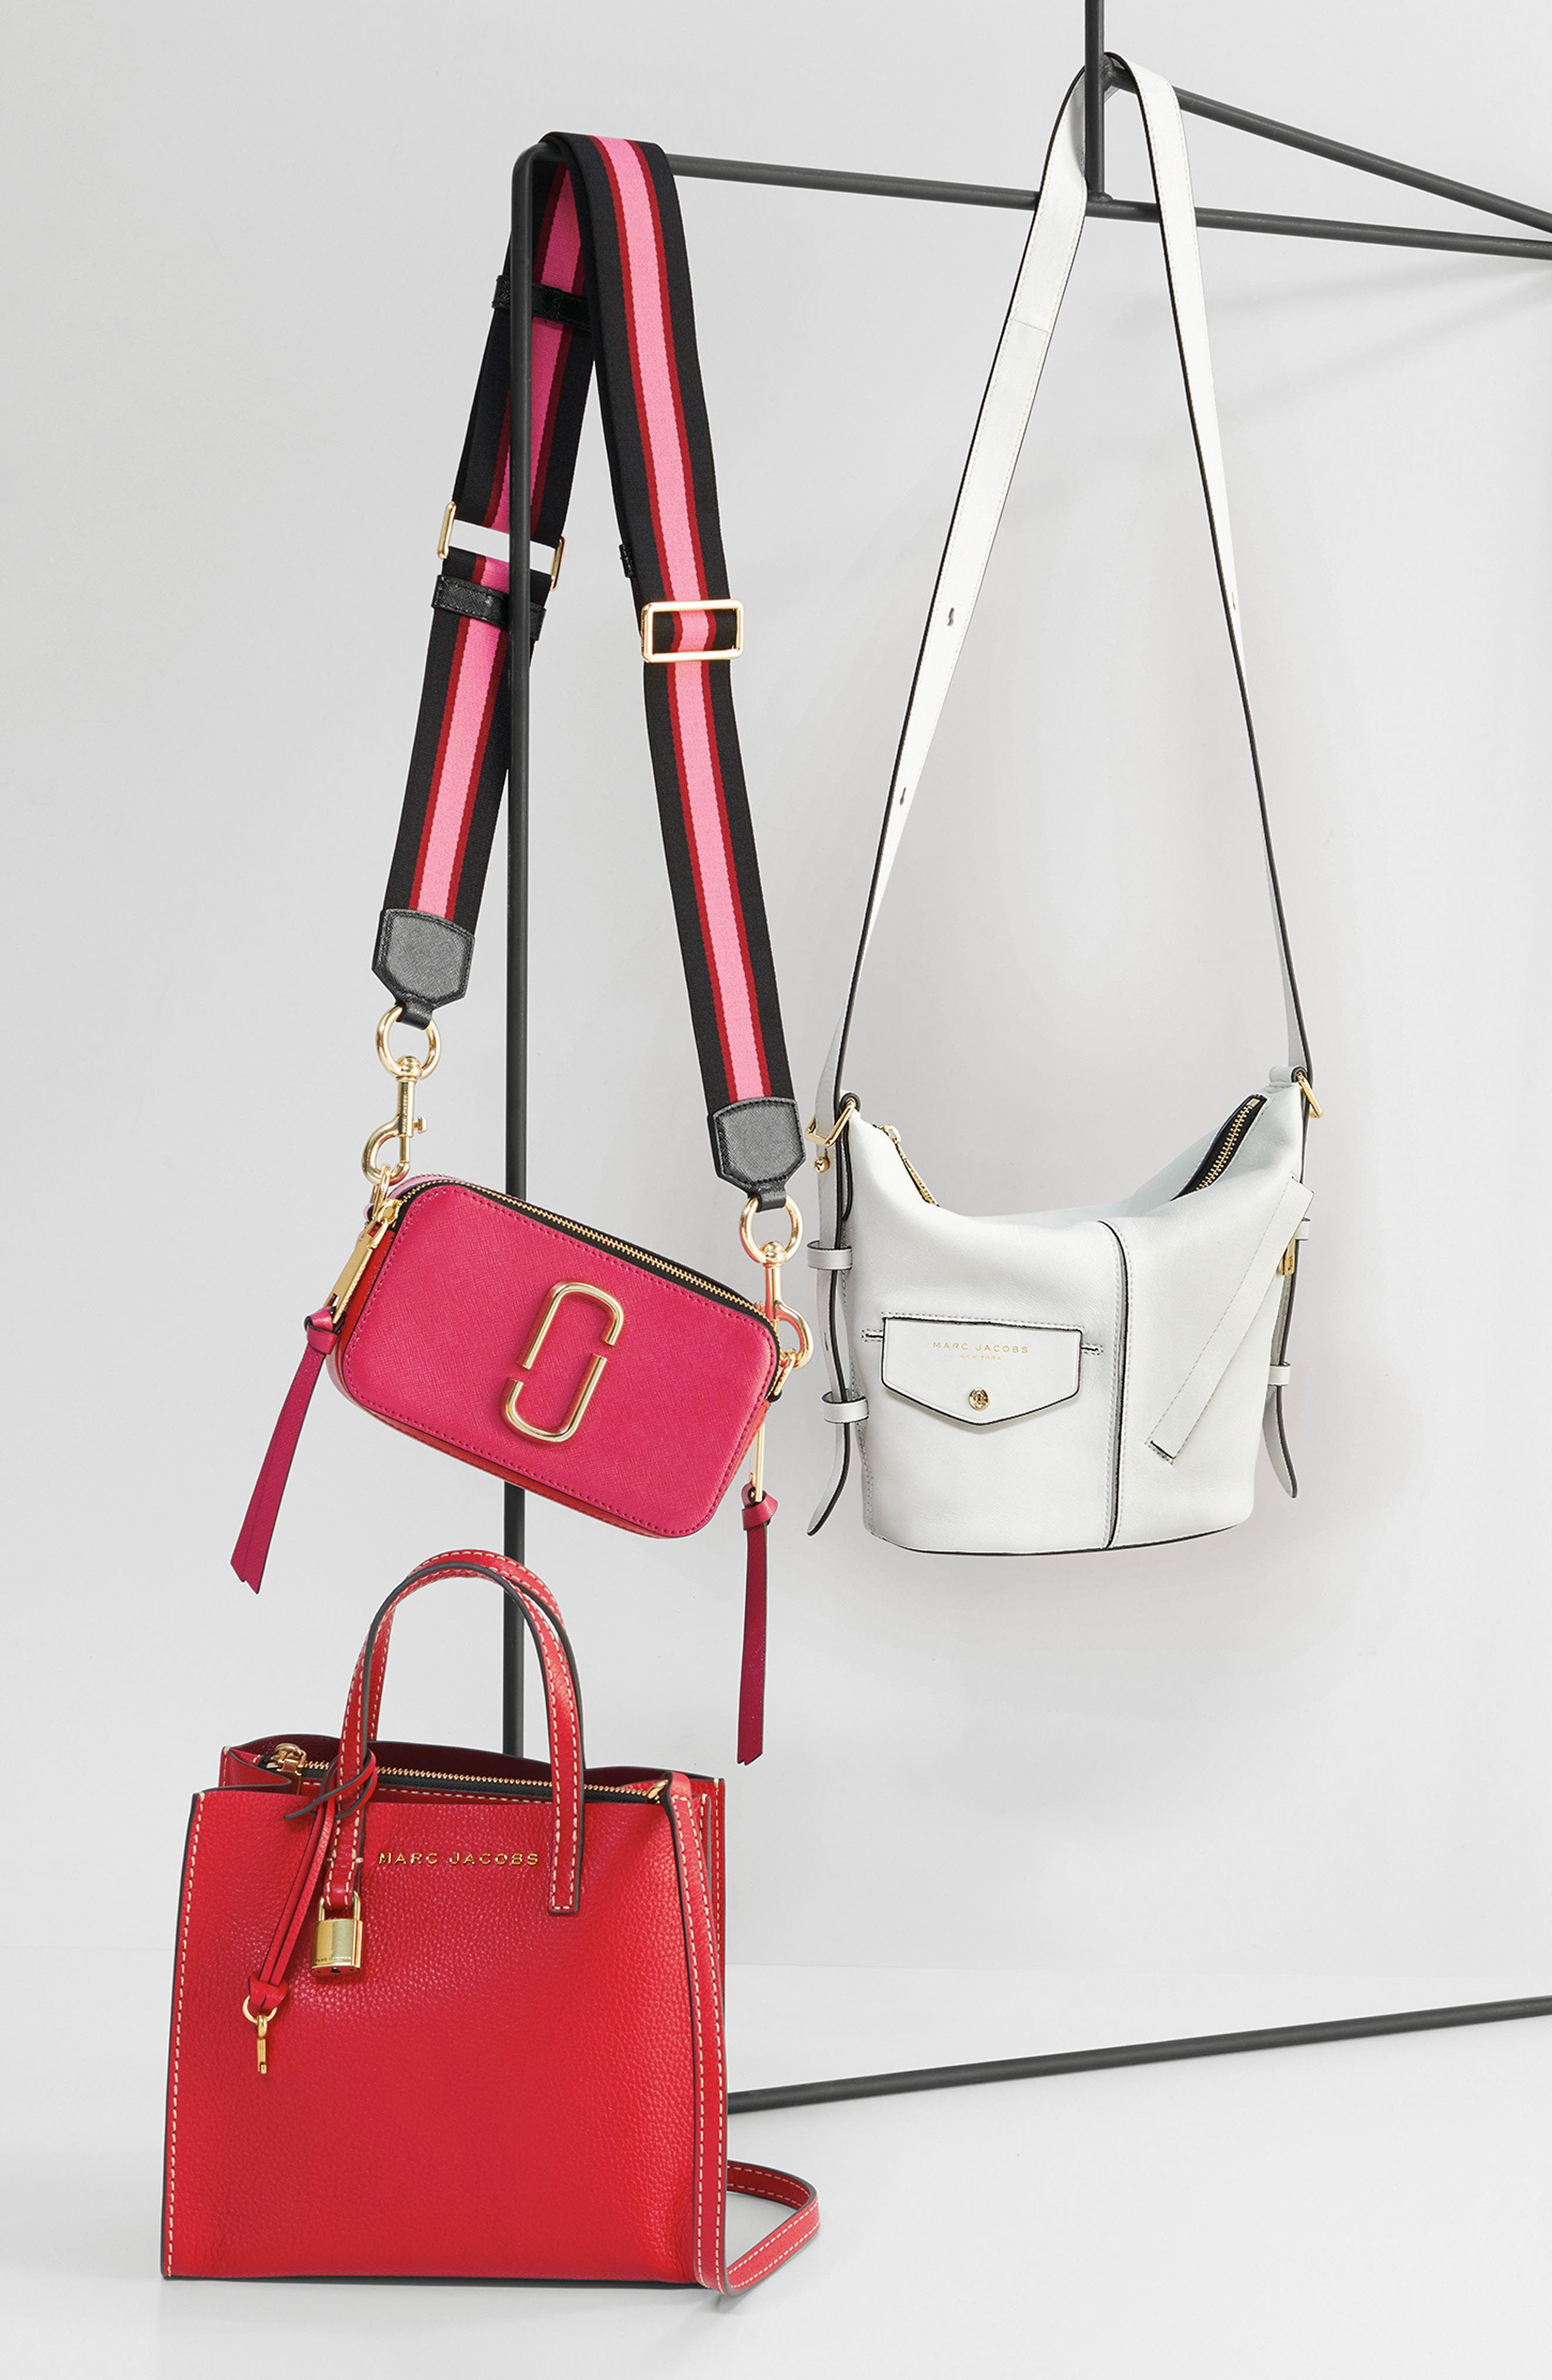 MARC JACOBS, Snapshot Crossbody Bag, Alternate thumbnail 11, color, BABY PINK/ RED